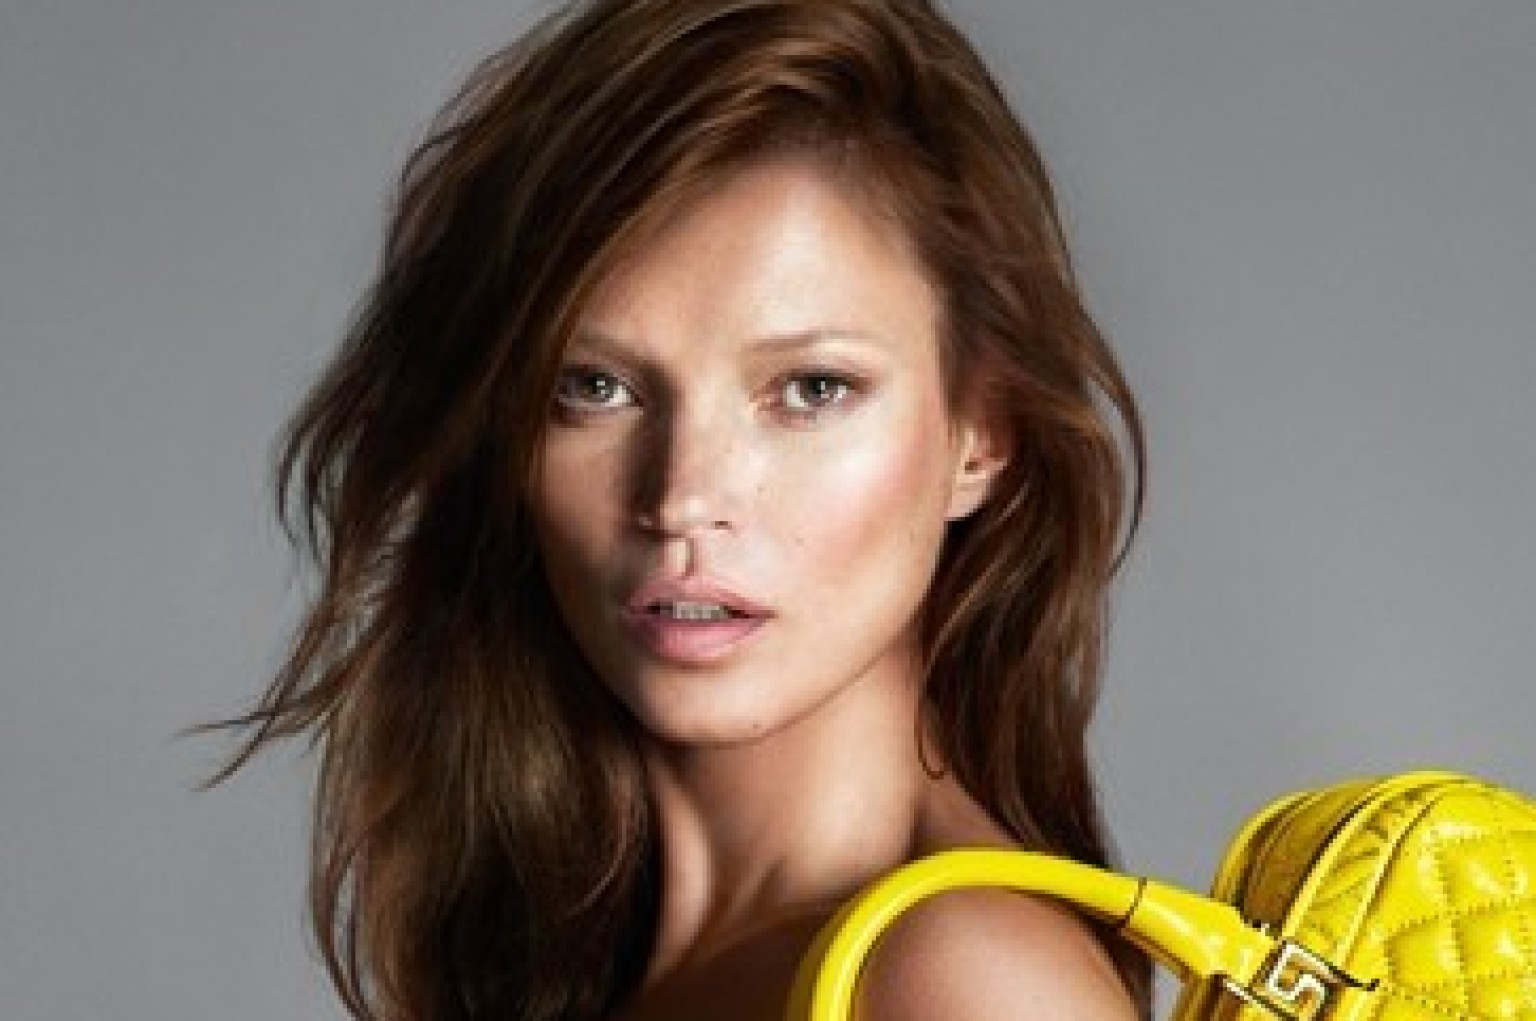 Kate Moss Playboy Preview Will The Cover Look Like This